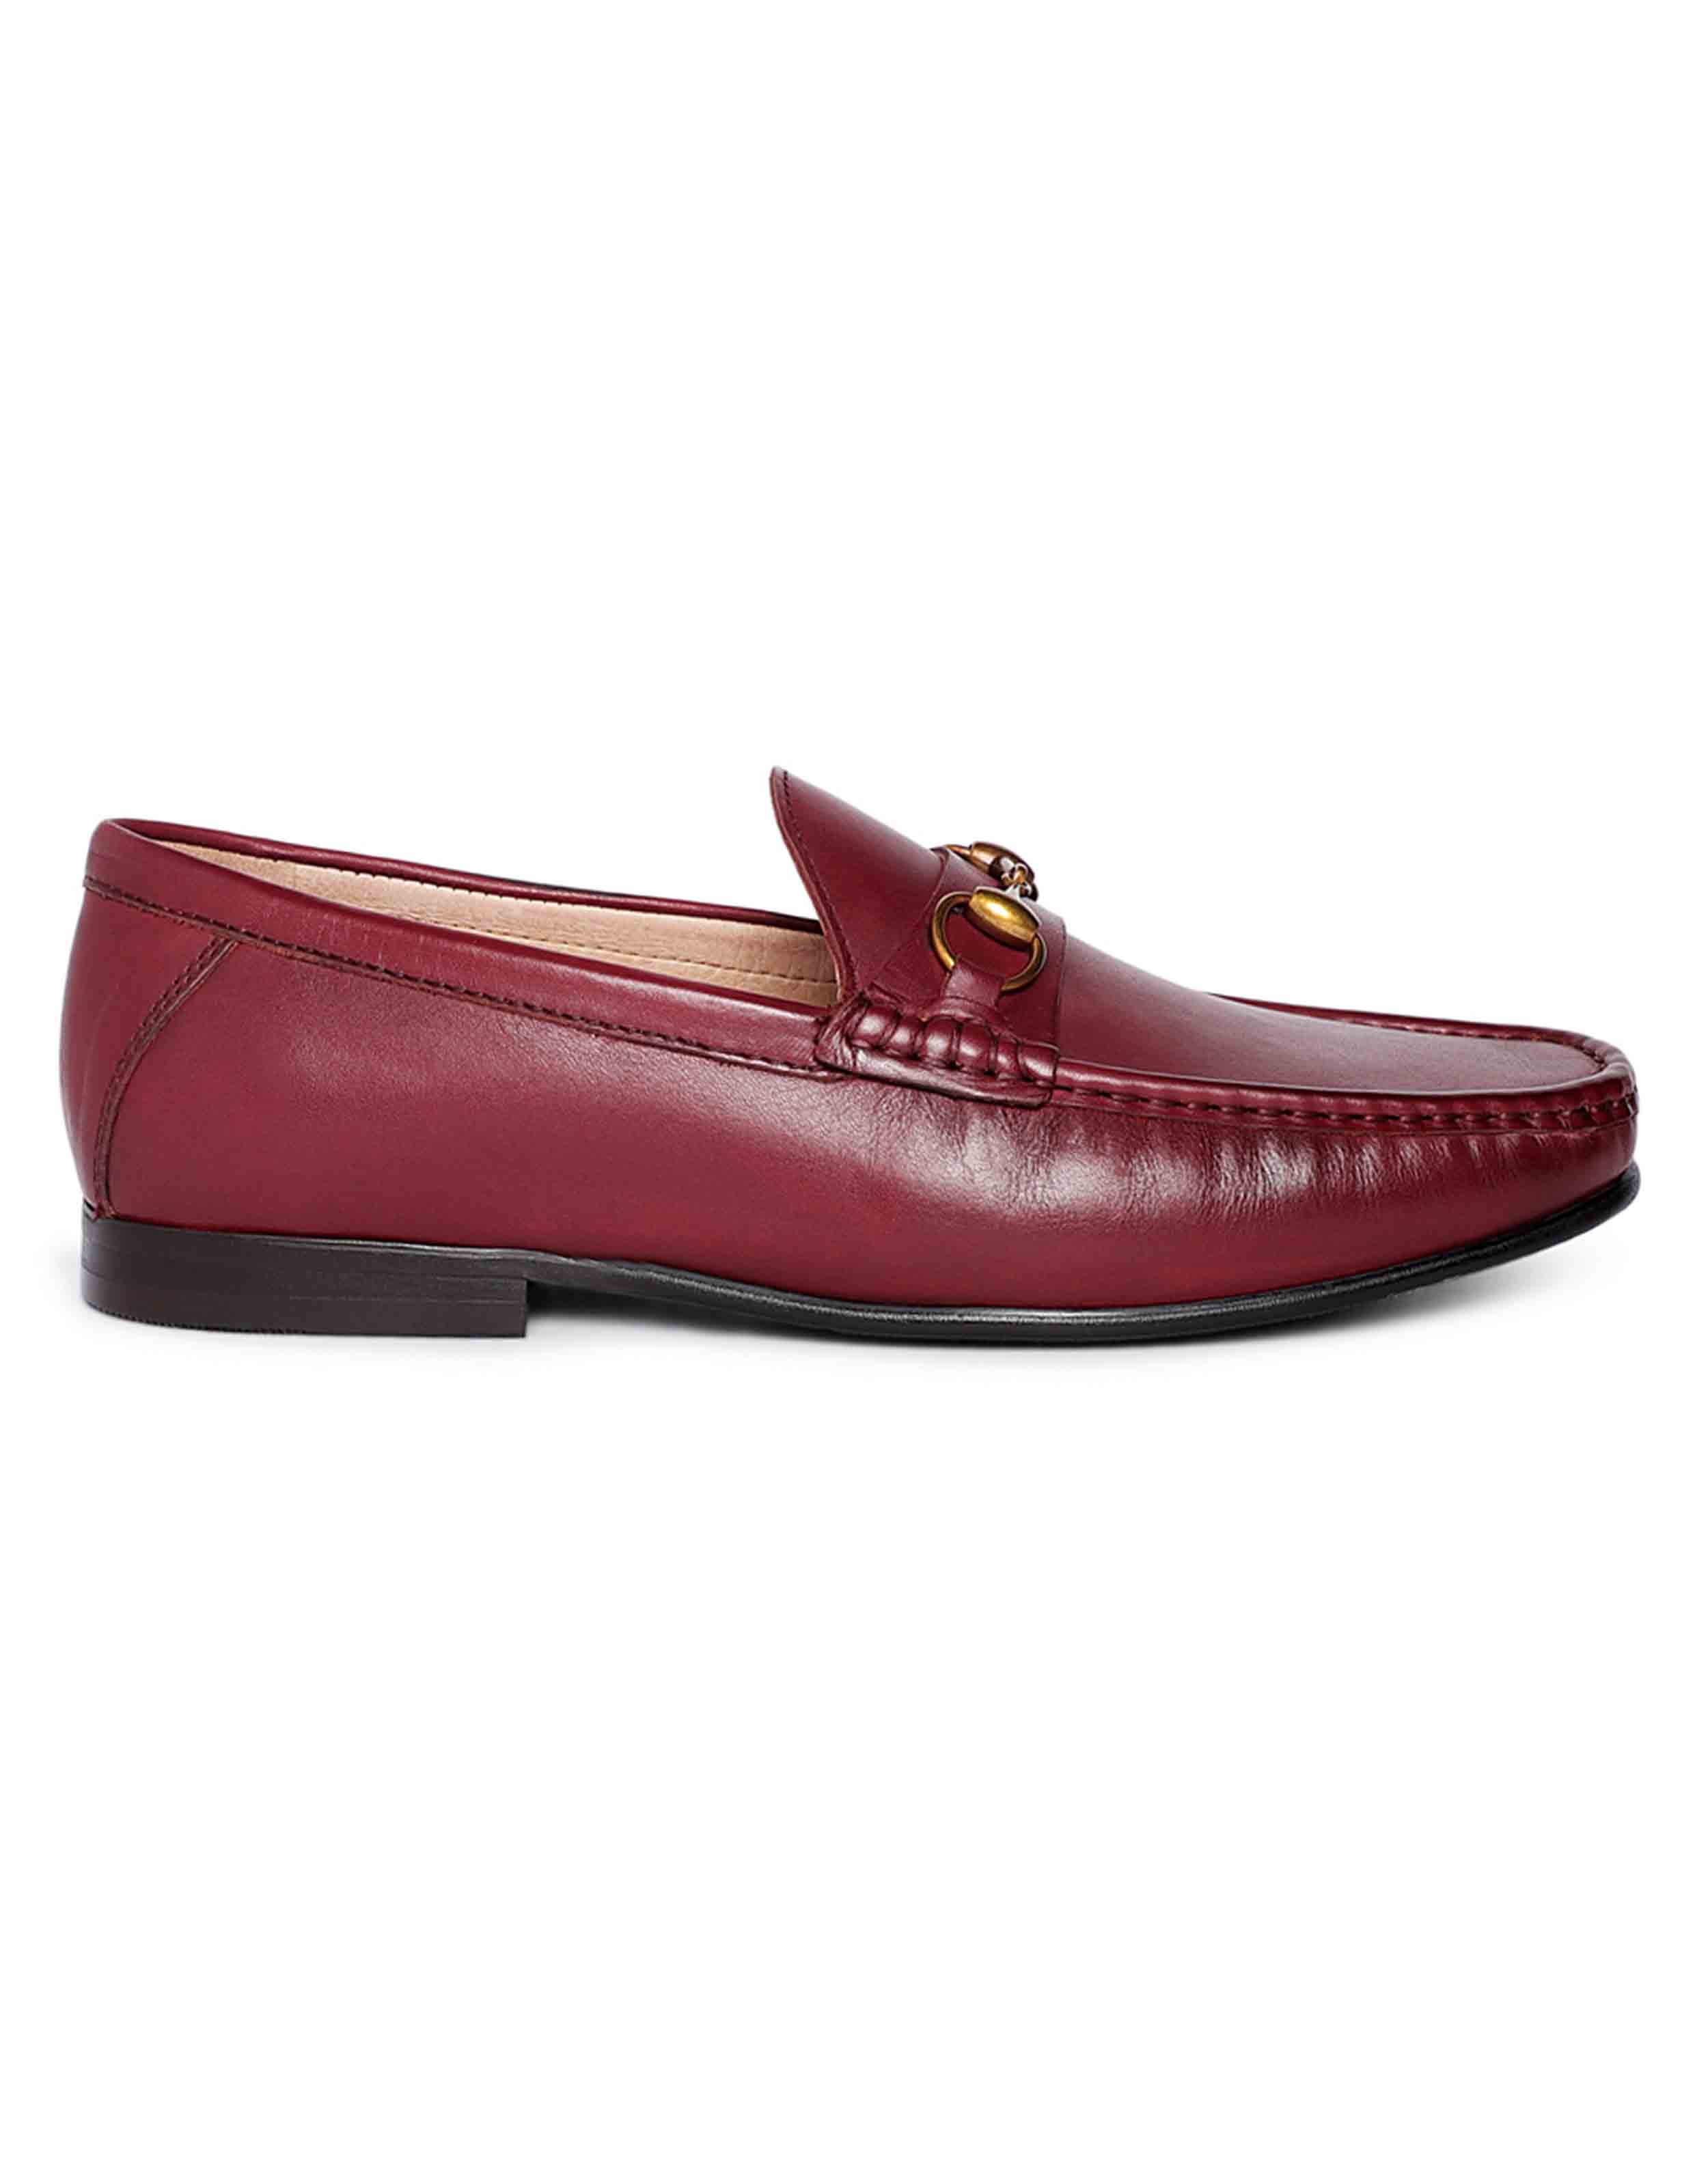 Burgundy Horse-bit loafer 1